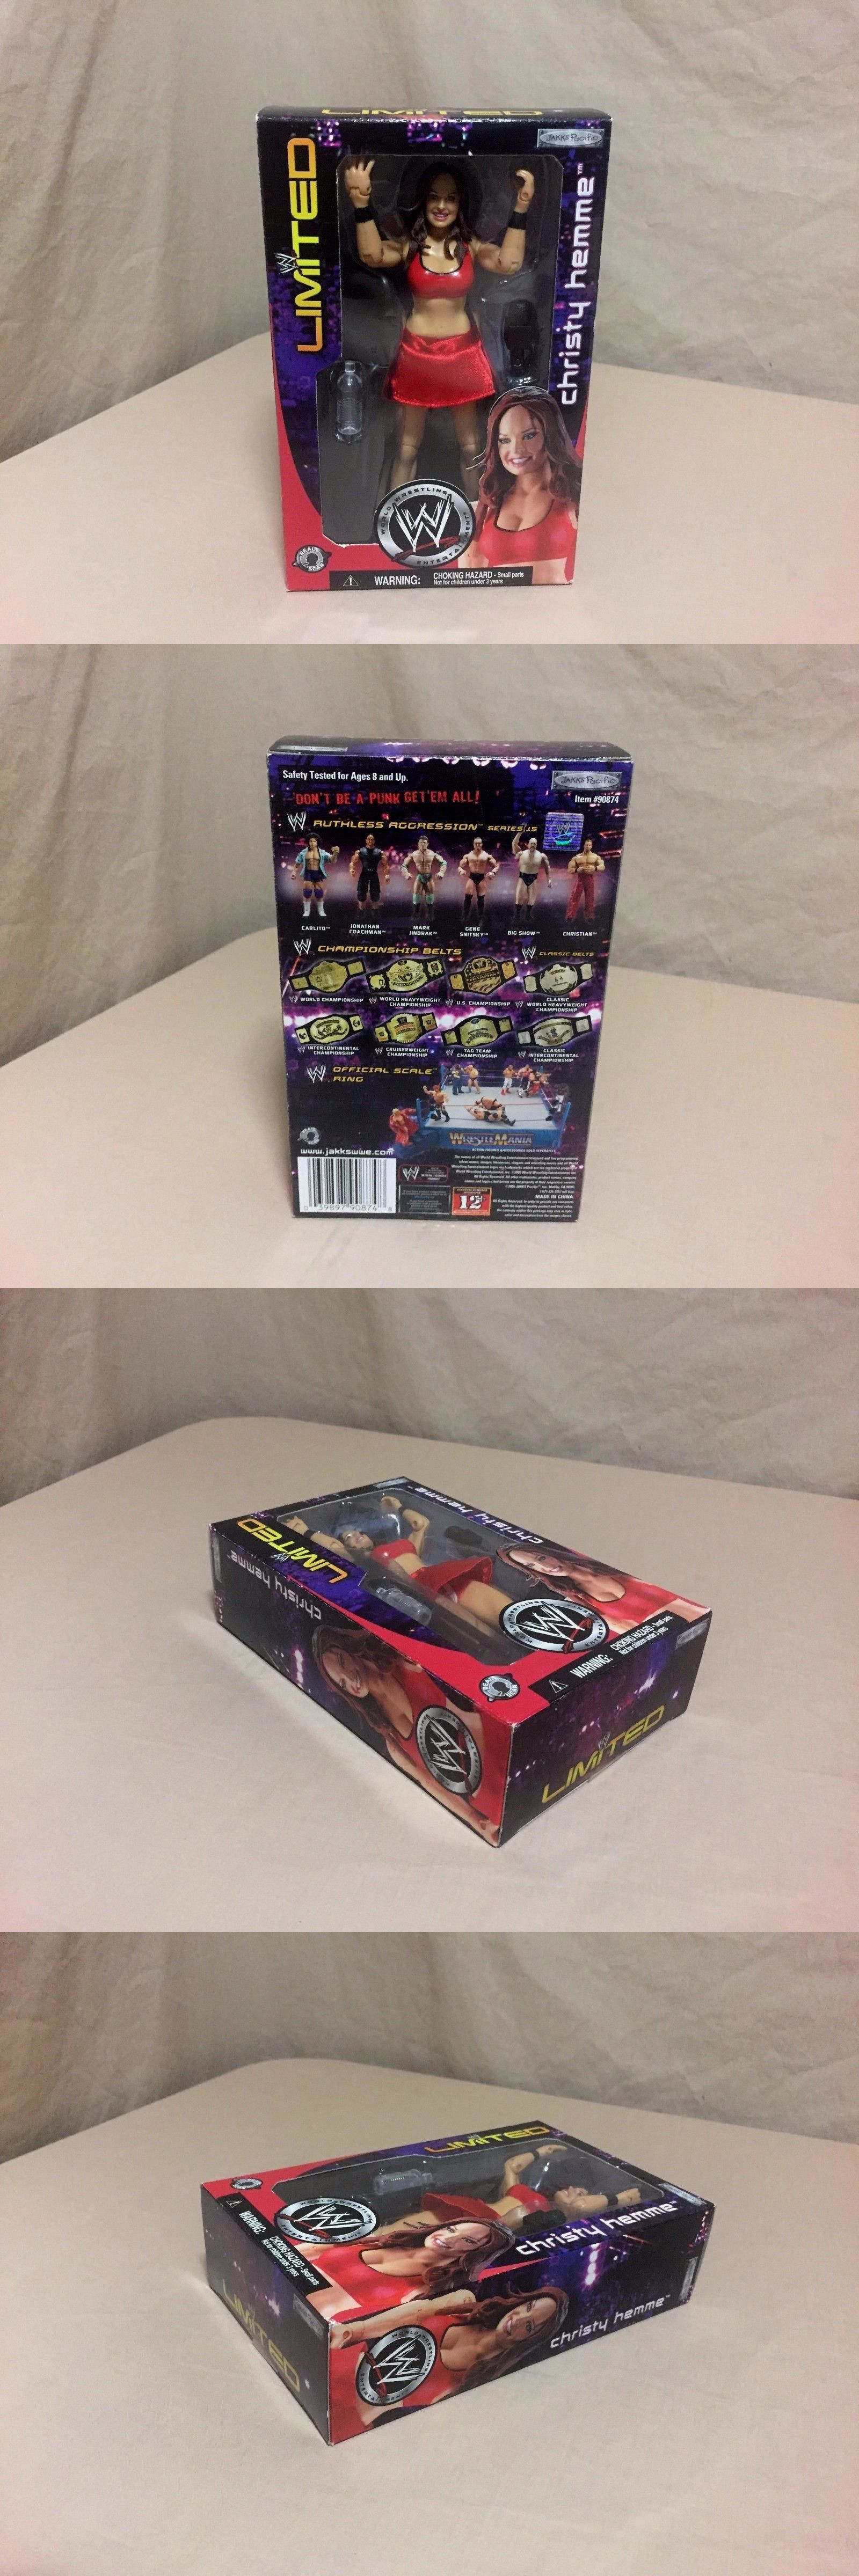 Someone bought this wwf superstars shoot out tabletop hockey game - Sports 754 Christy Hemme Action Figure Wwe Limited Jakks 2005 New Sealed Buy